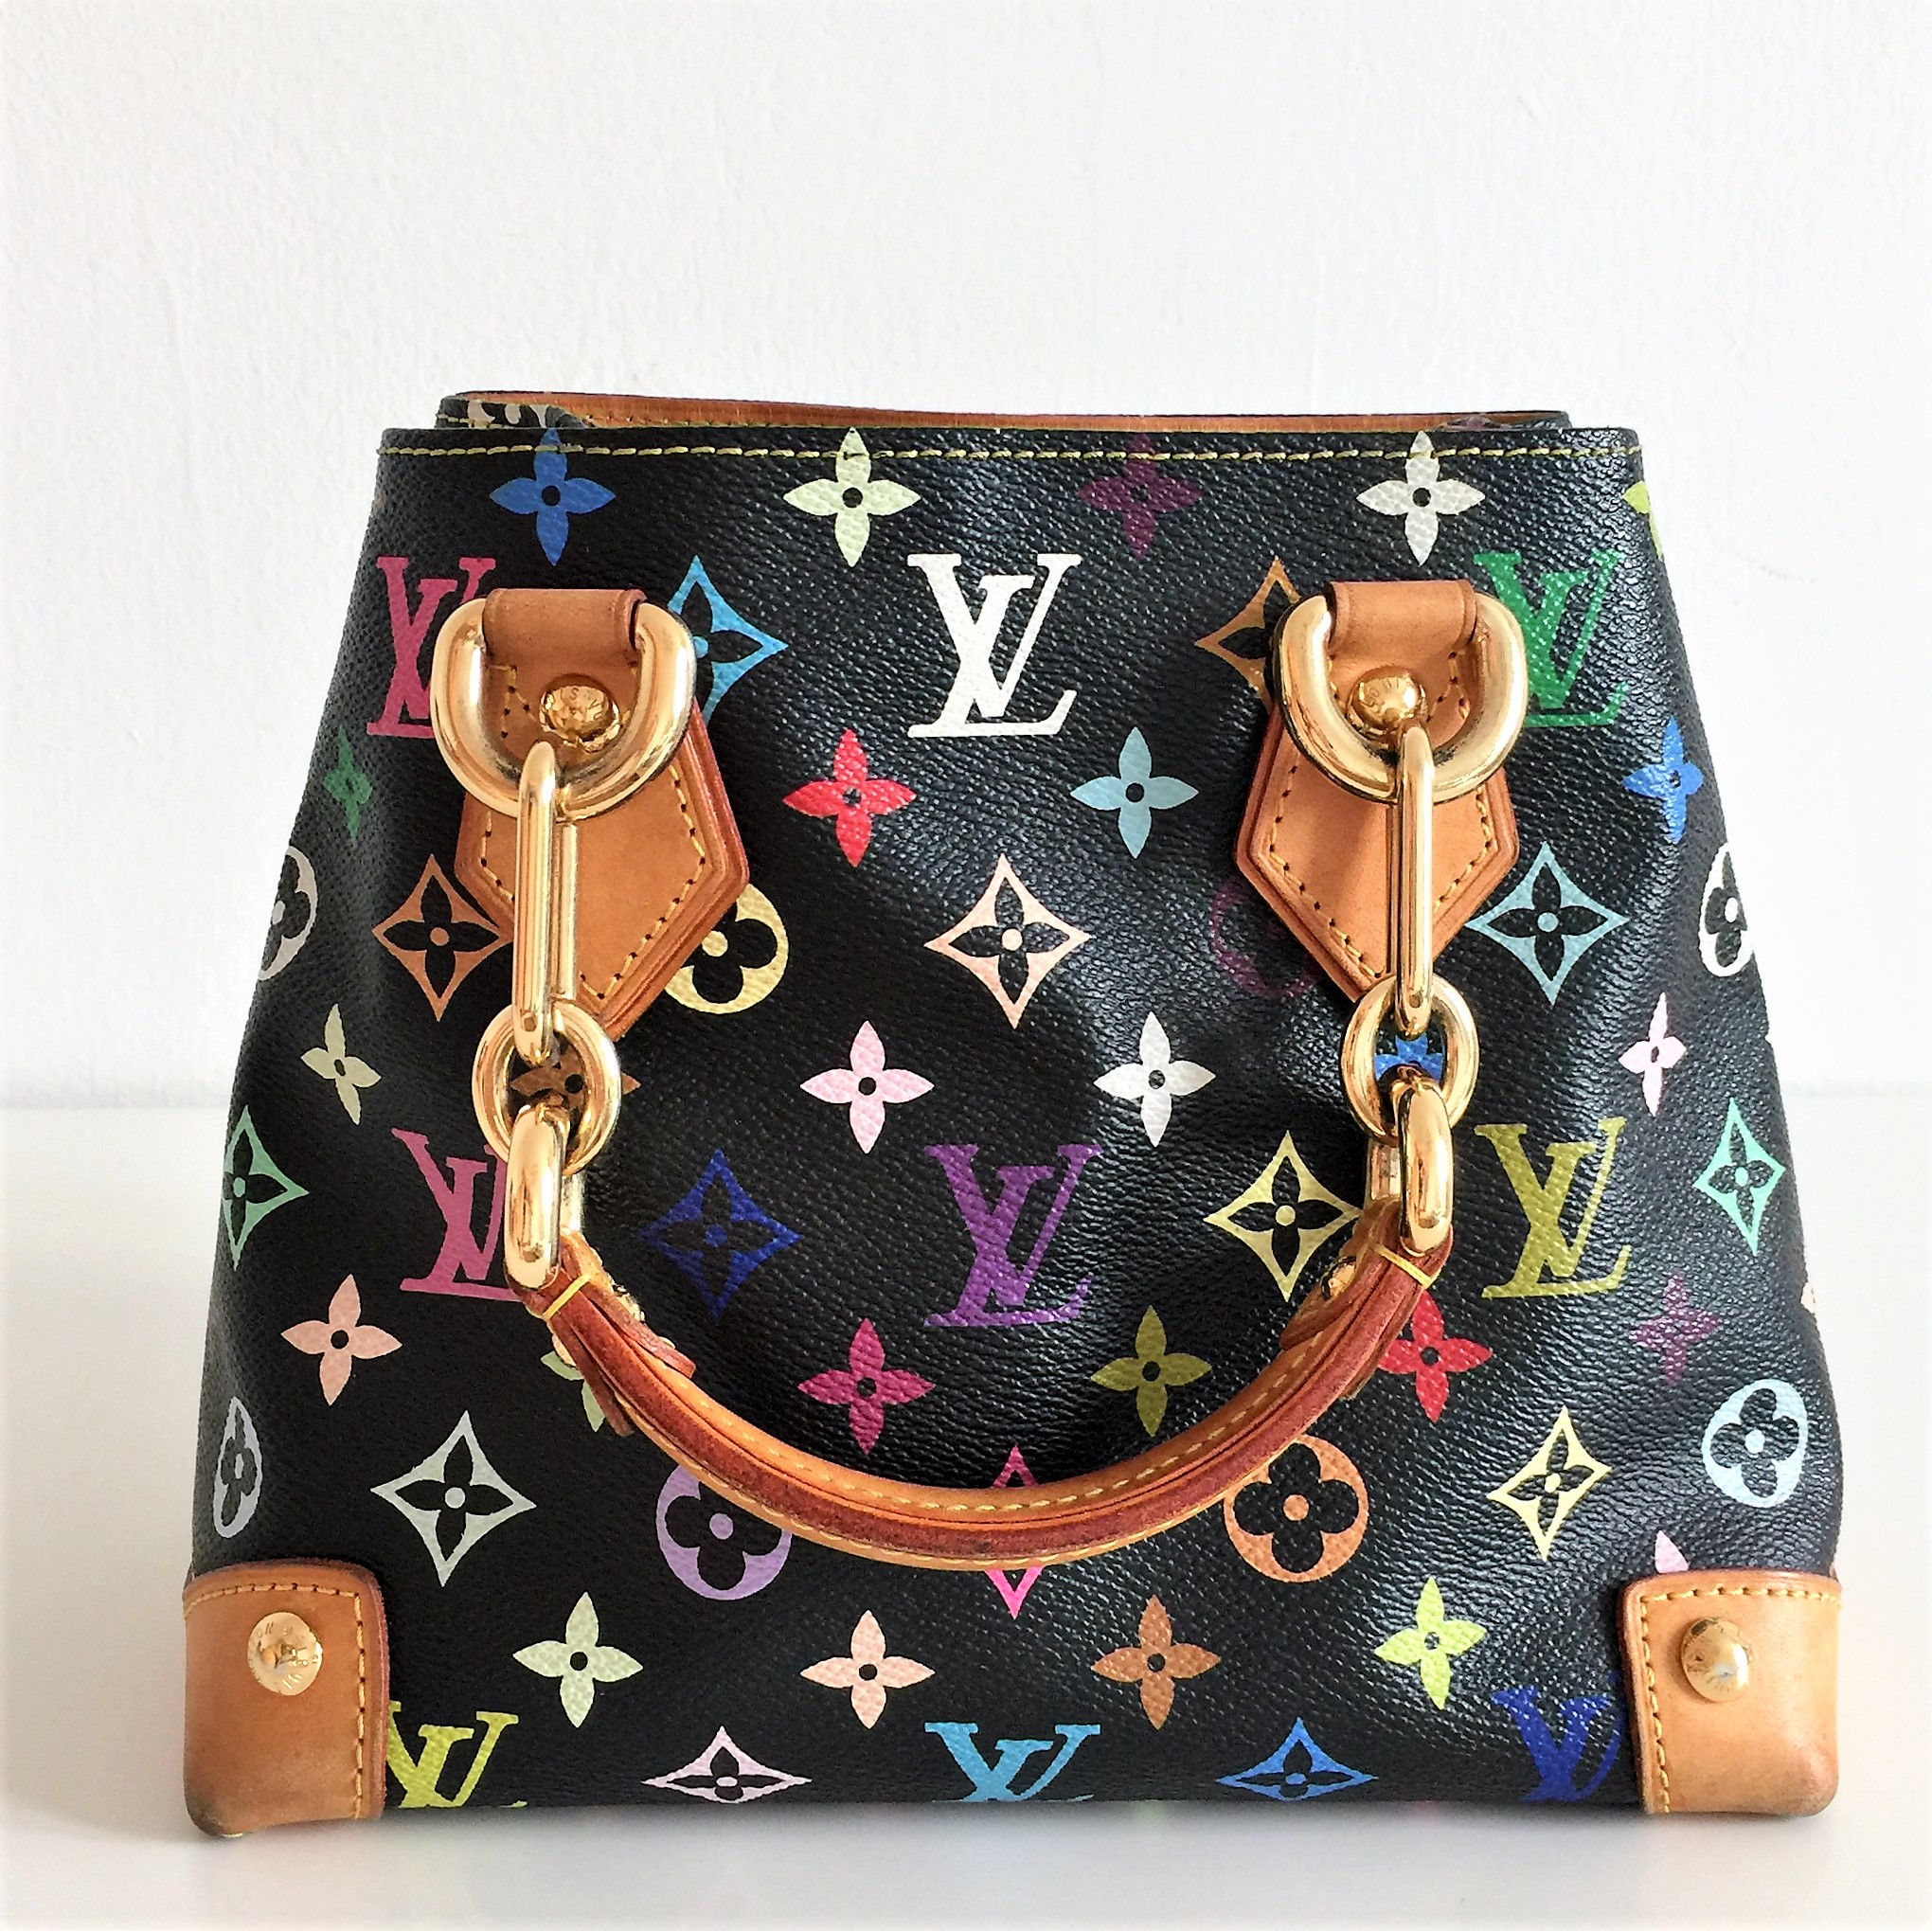 Borsa louis vuitton audra multicolore mai usata come for Borse usate firmate